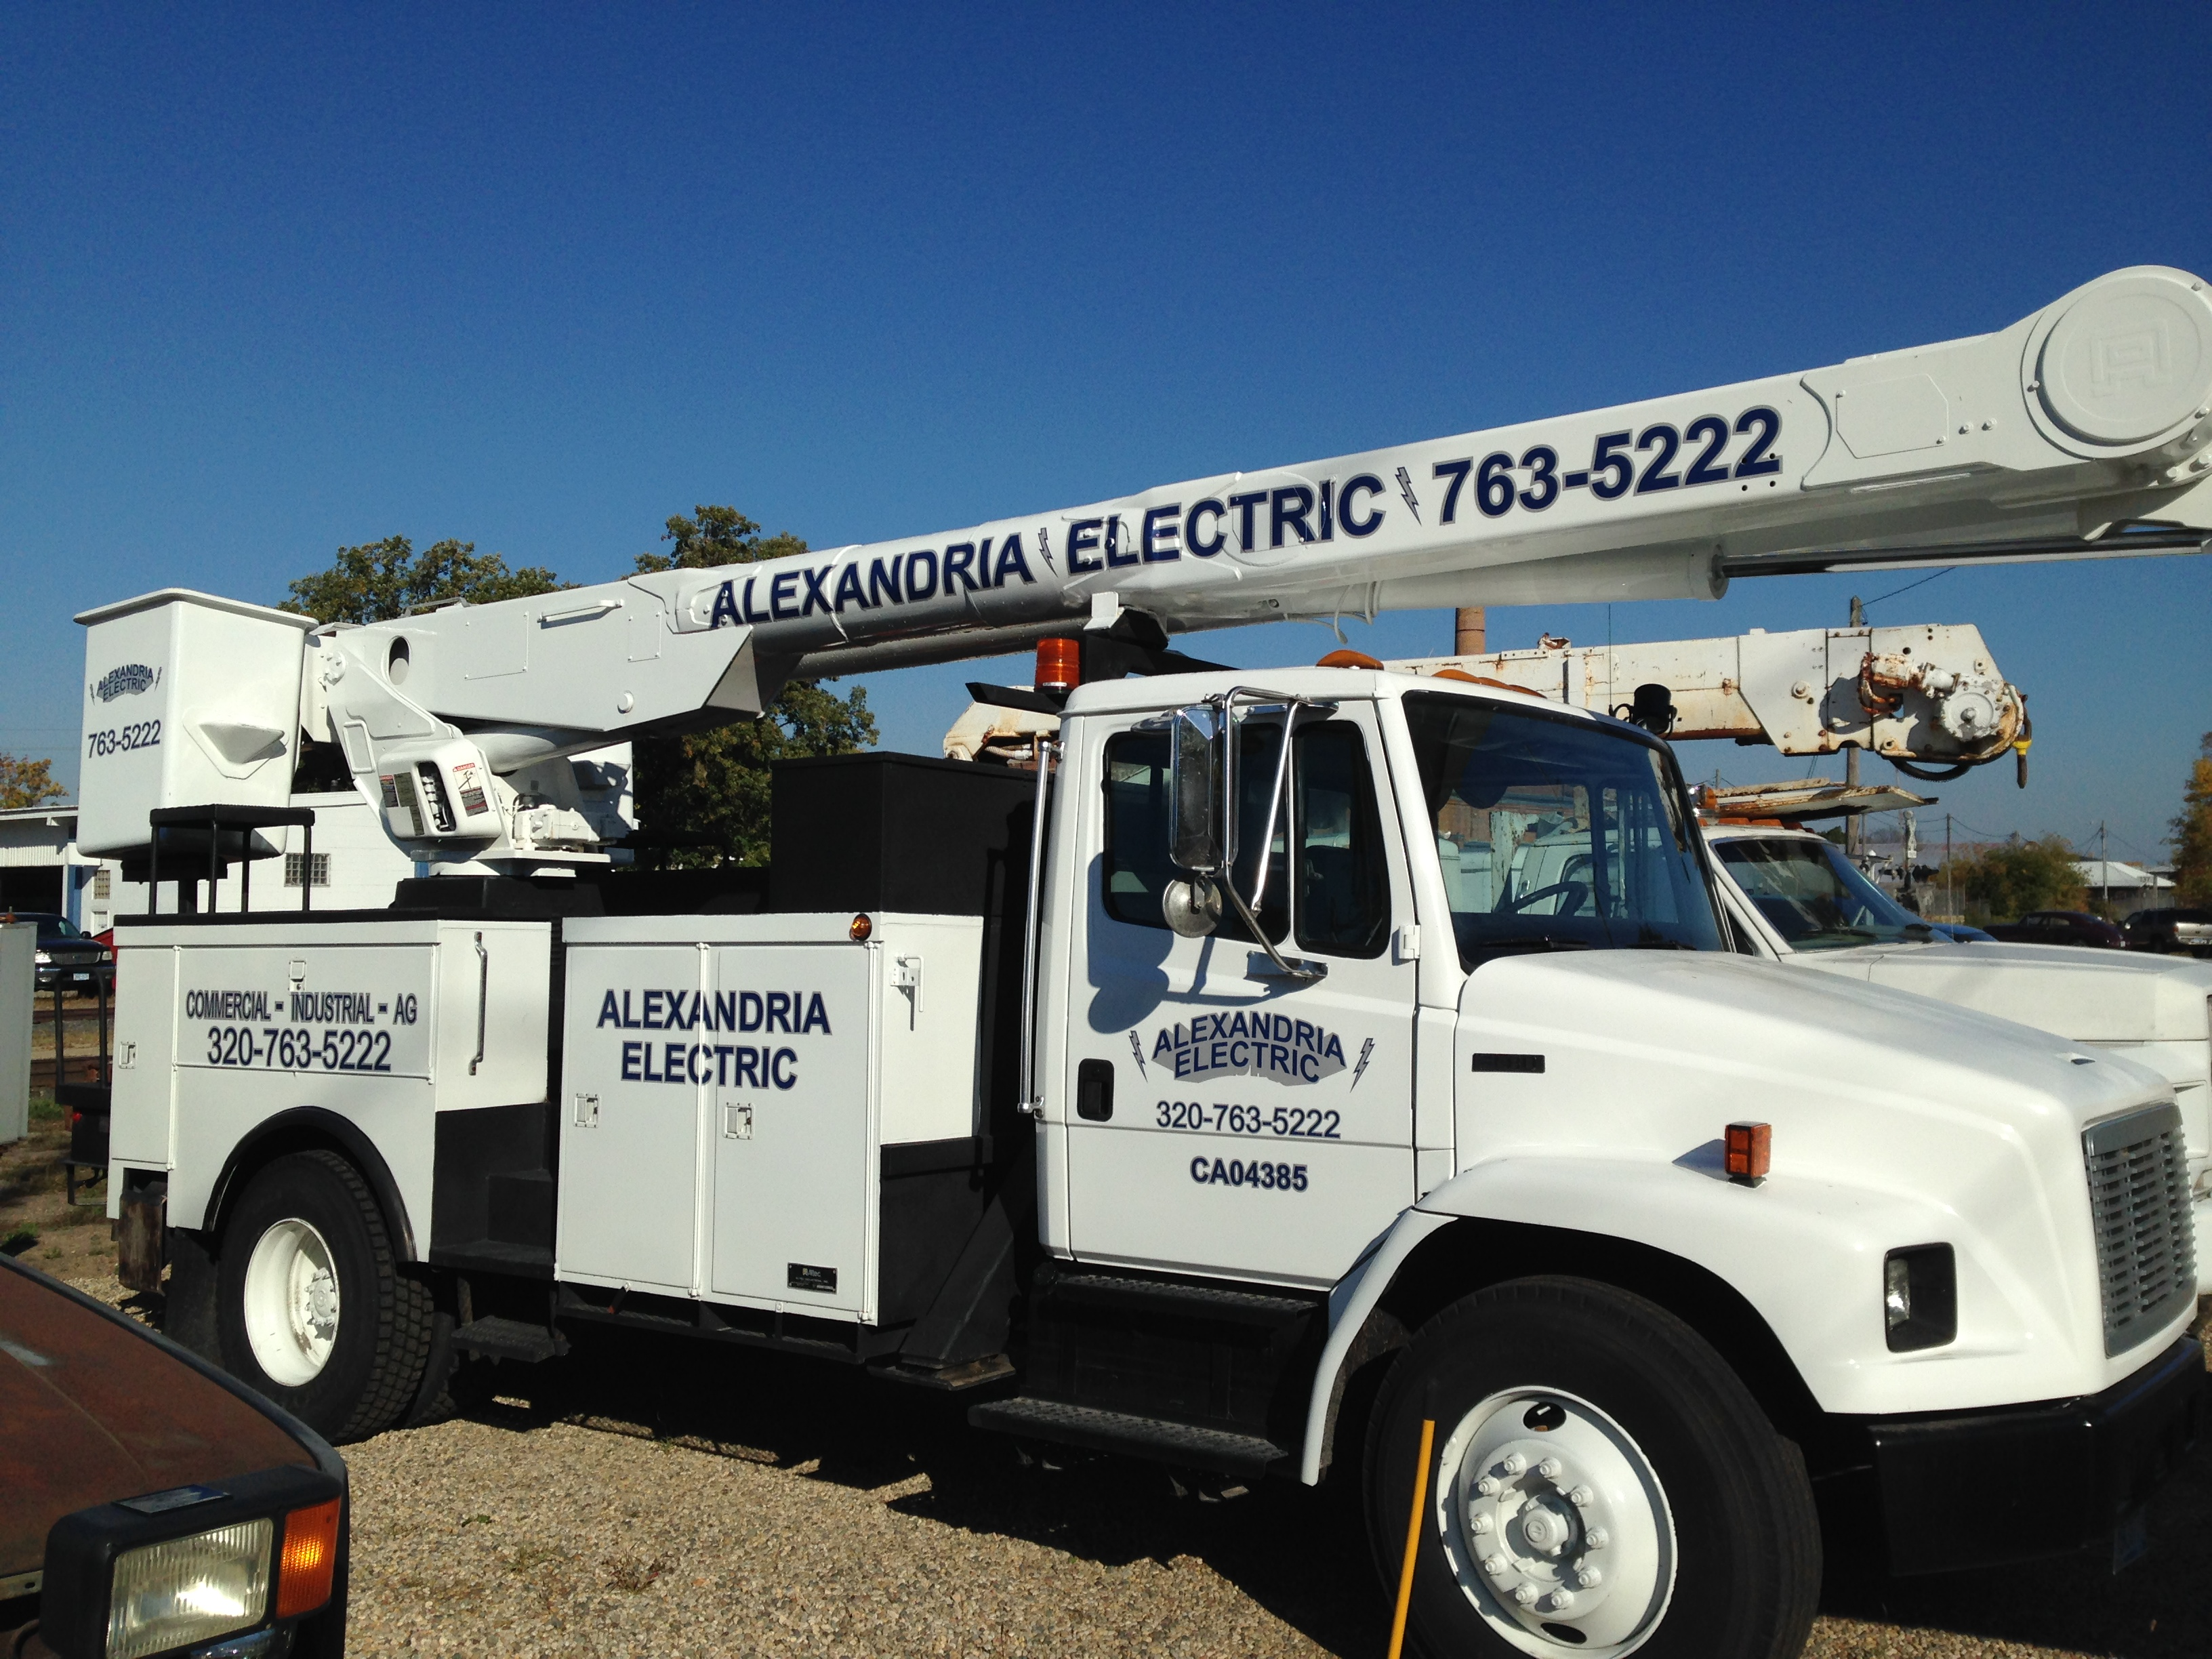 Alexandria Electric Truck Decals | Signmax.com